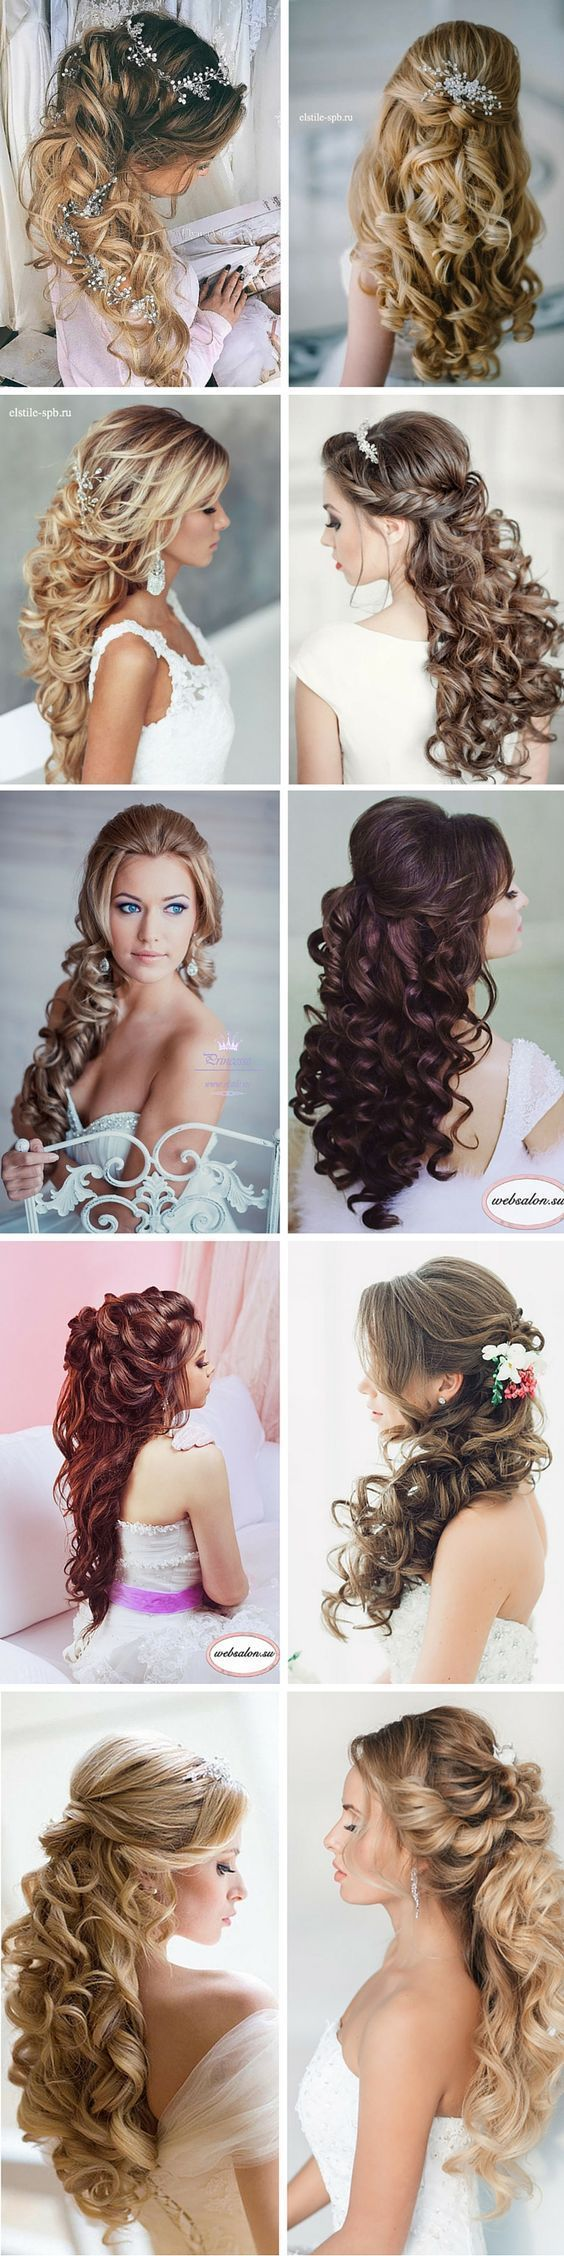 #bride #hairstyle like a #princess | Haare http://www.deal-shop.com/product/electronic-foot-file-with-diamond-crystals/